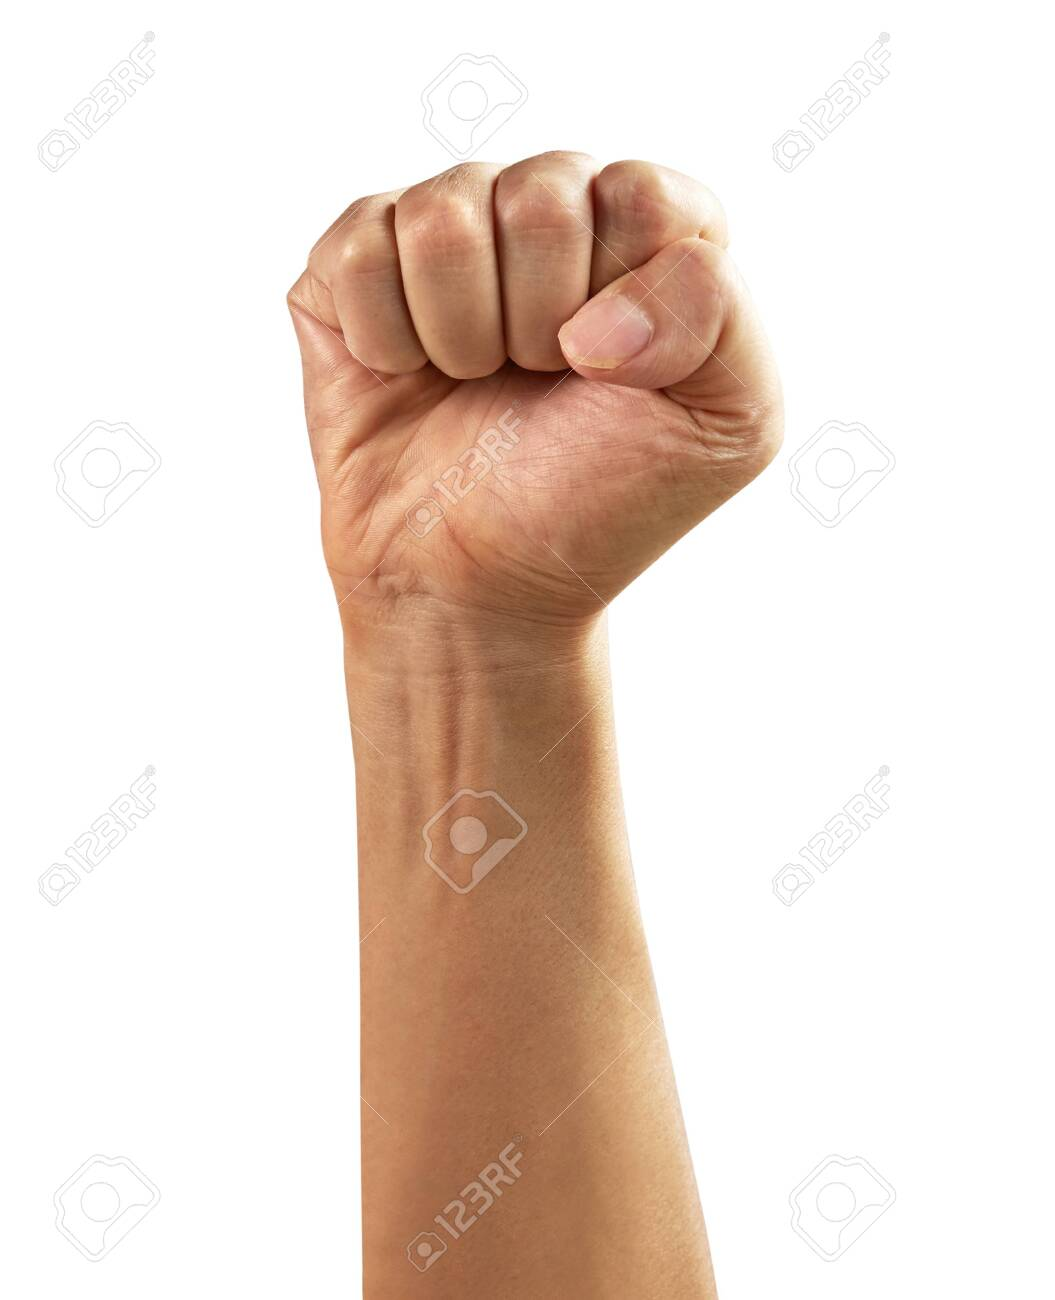 Male clenched fist, isolated on a white background - 151193970